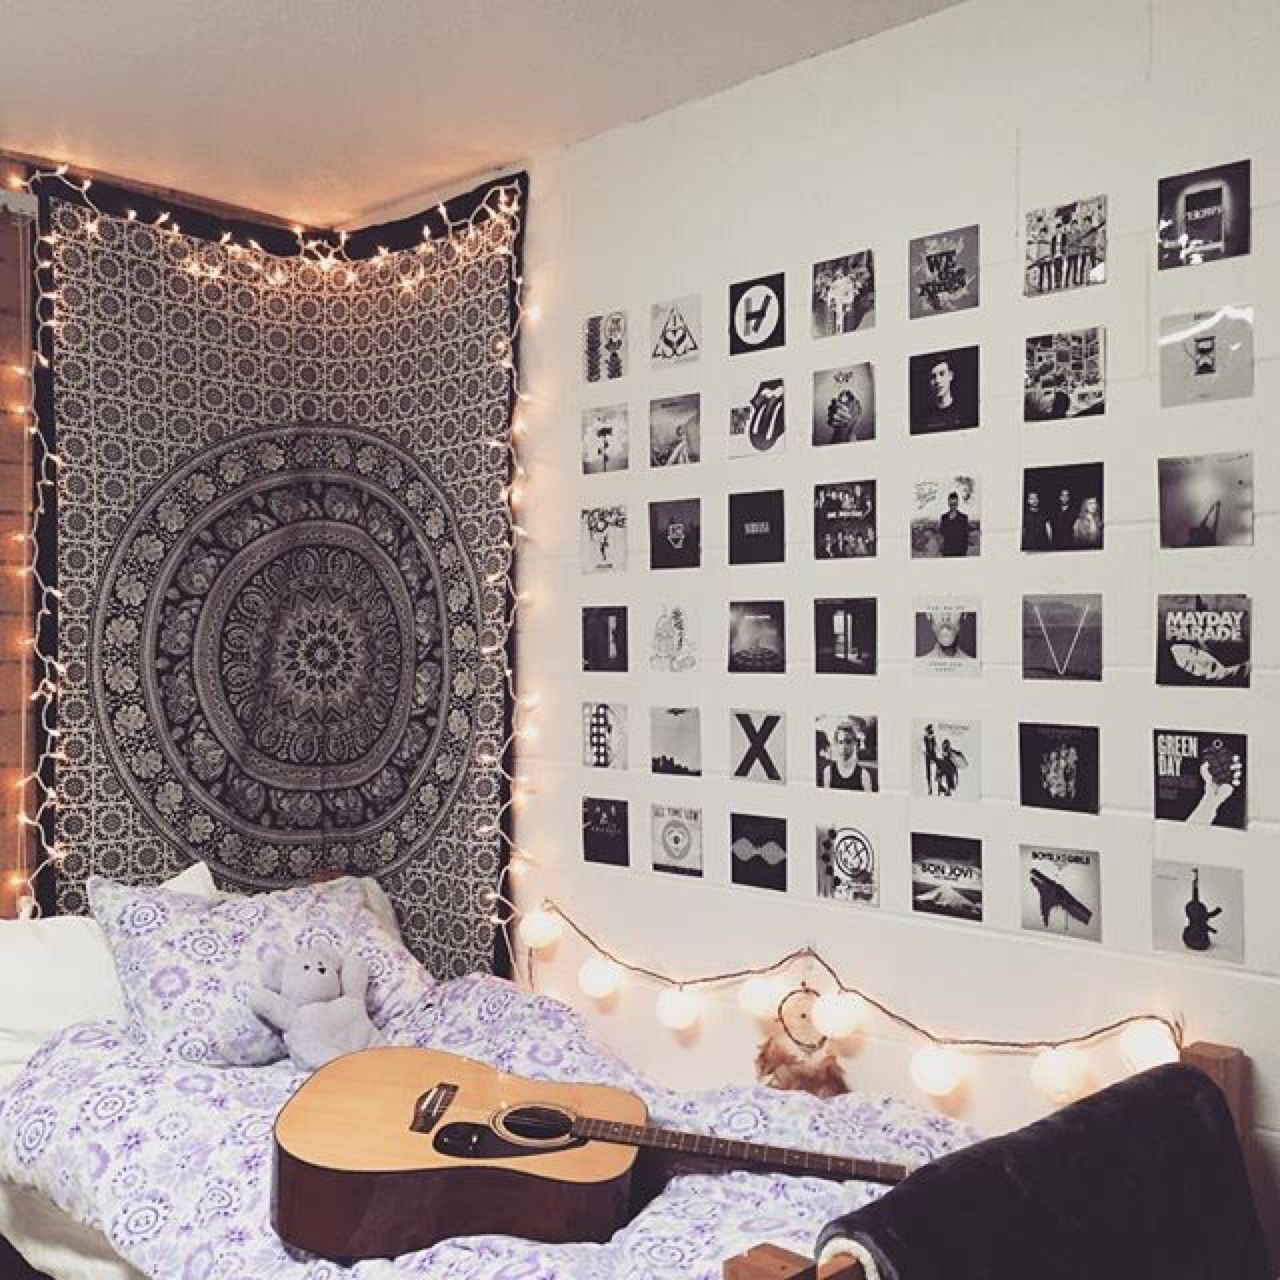 Source Myroomspo Tapestry Bedroom Tumblr Decoration Room Decor Diy Inspiration Poster Lights Fairy Collage Bands Album Wall Art